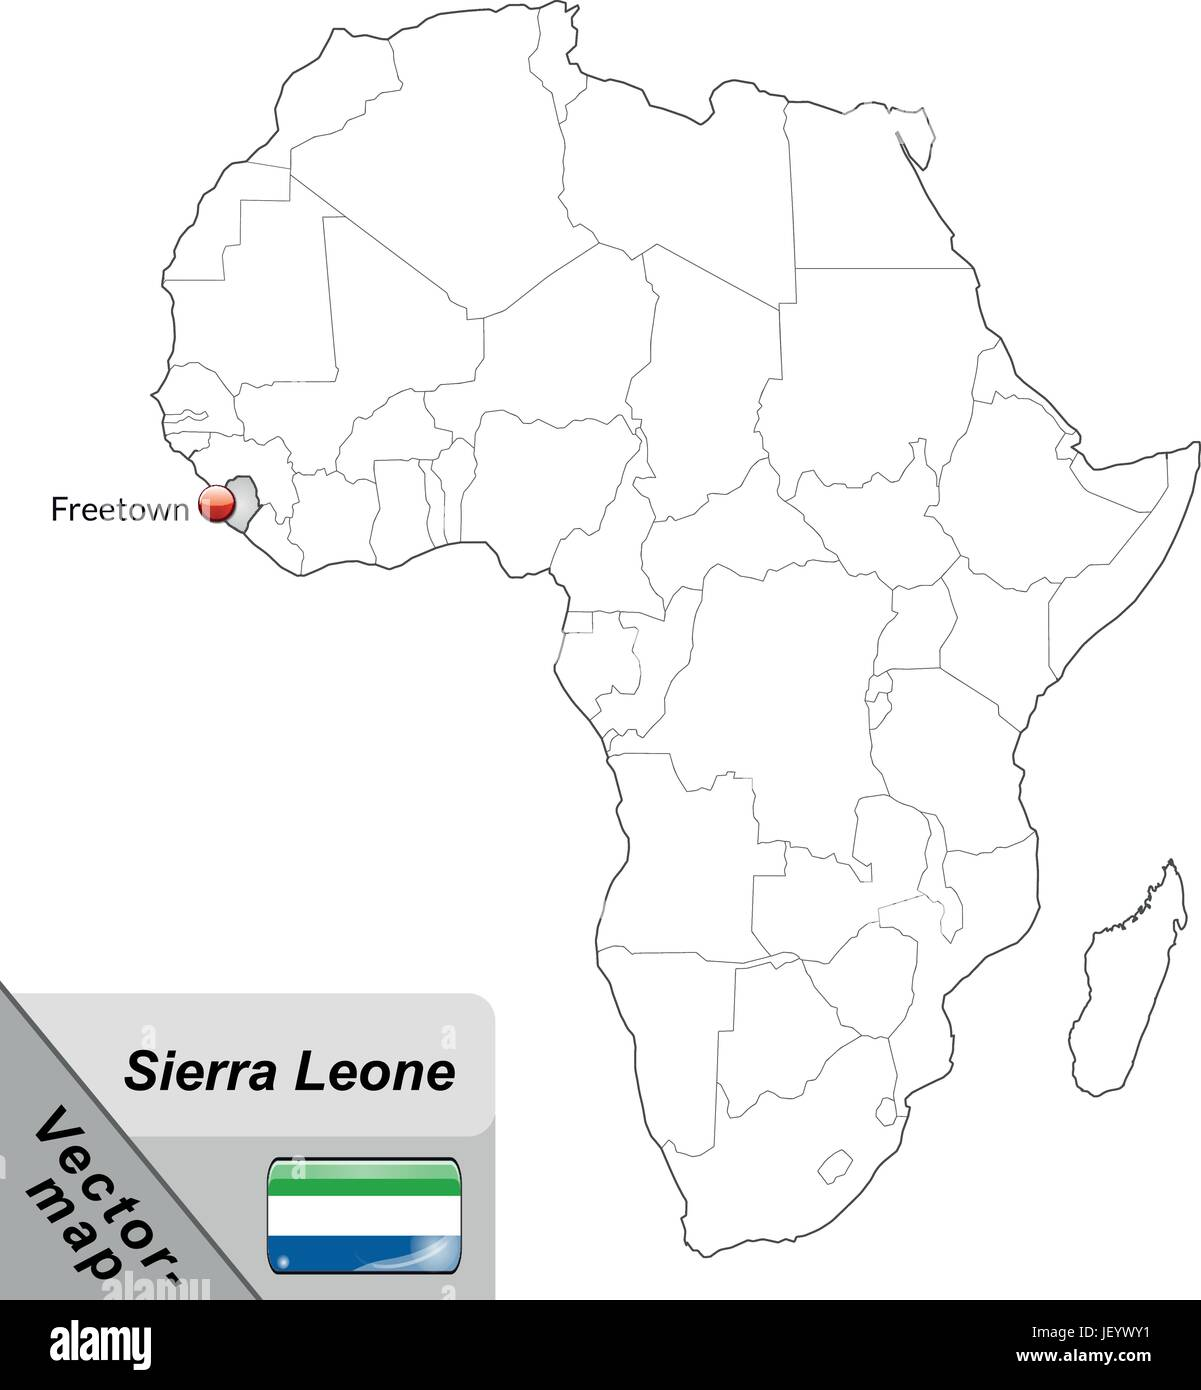 Sierra Leone Map Stock Vector Images - Alamy